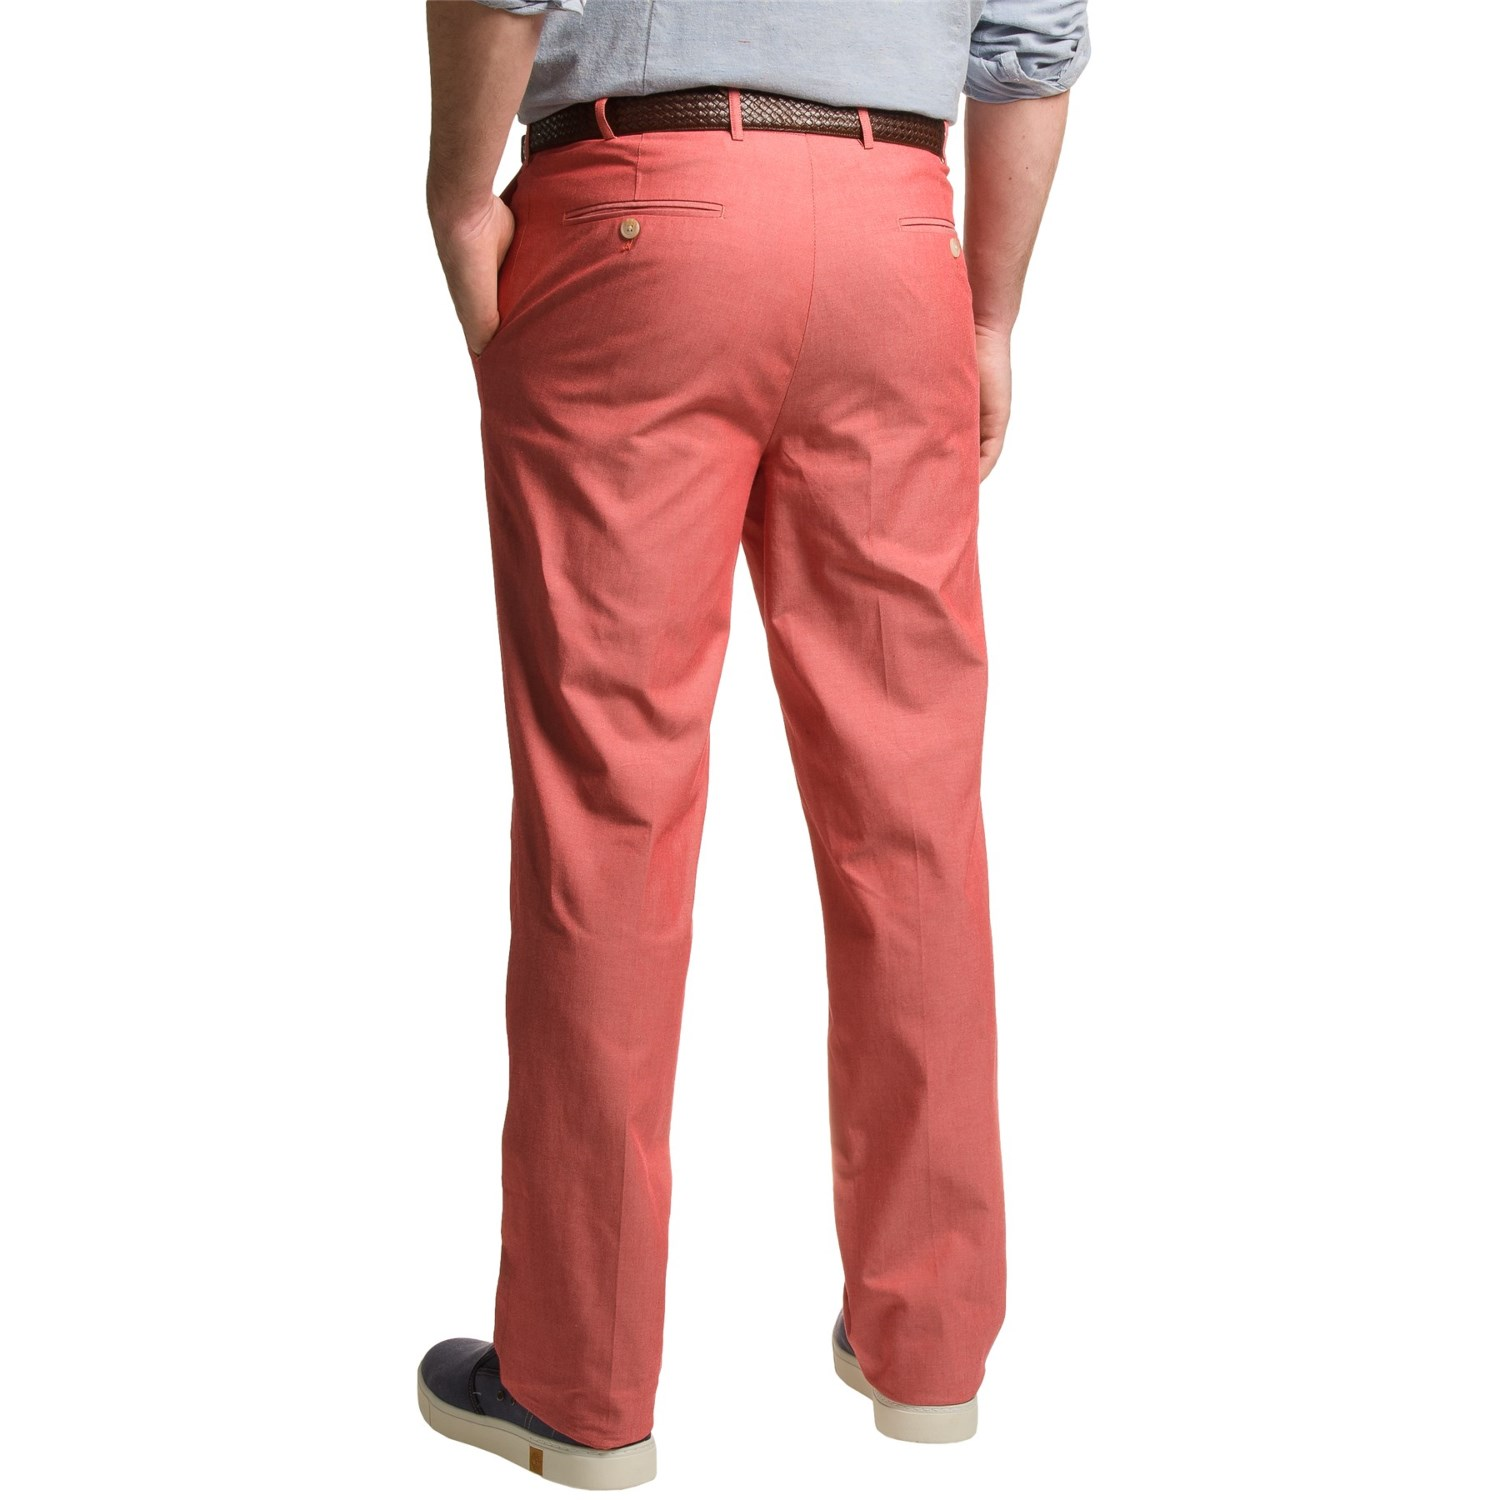 Dukes bark cotton chambray pants for men save 59 for Chambray jeans